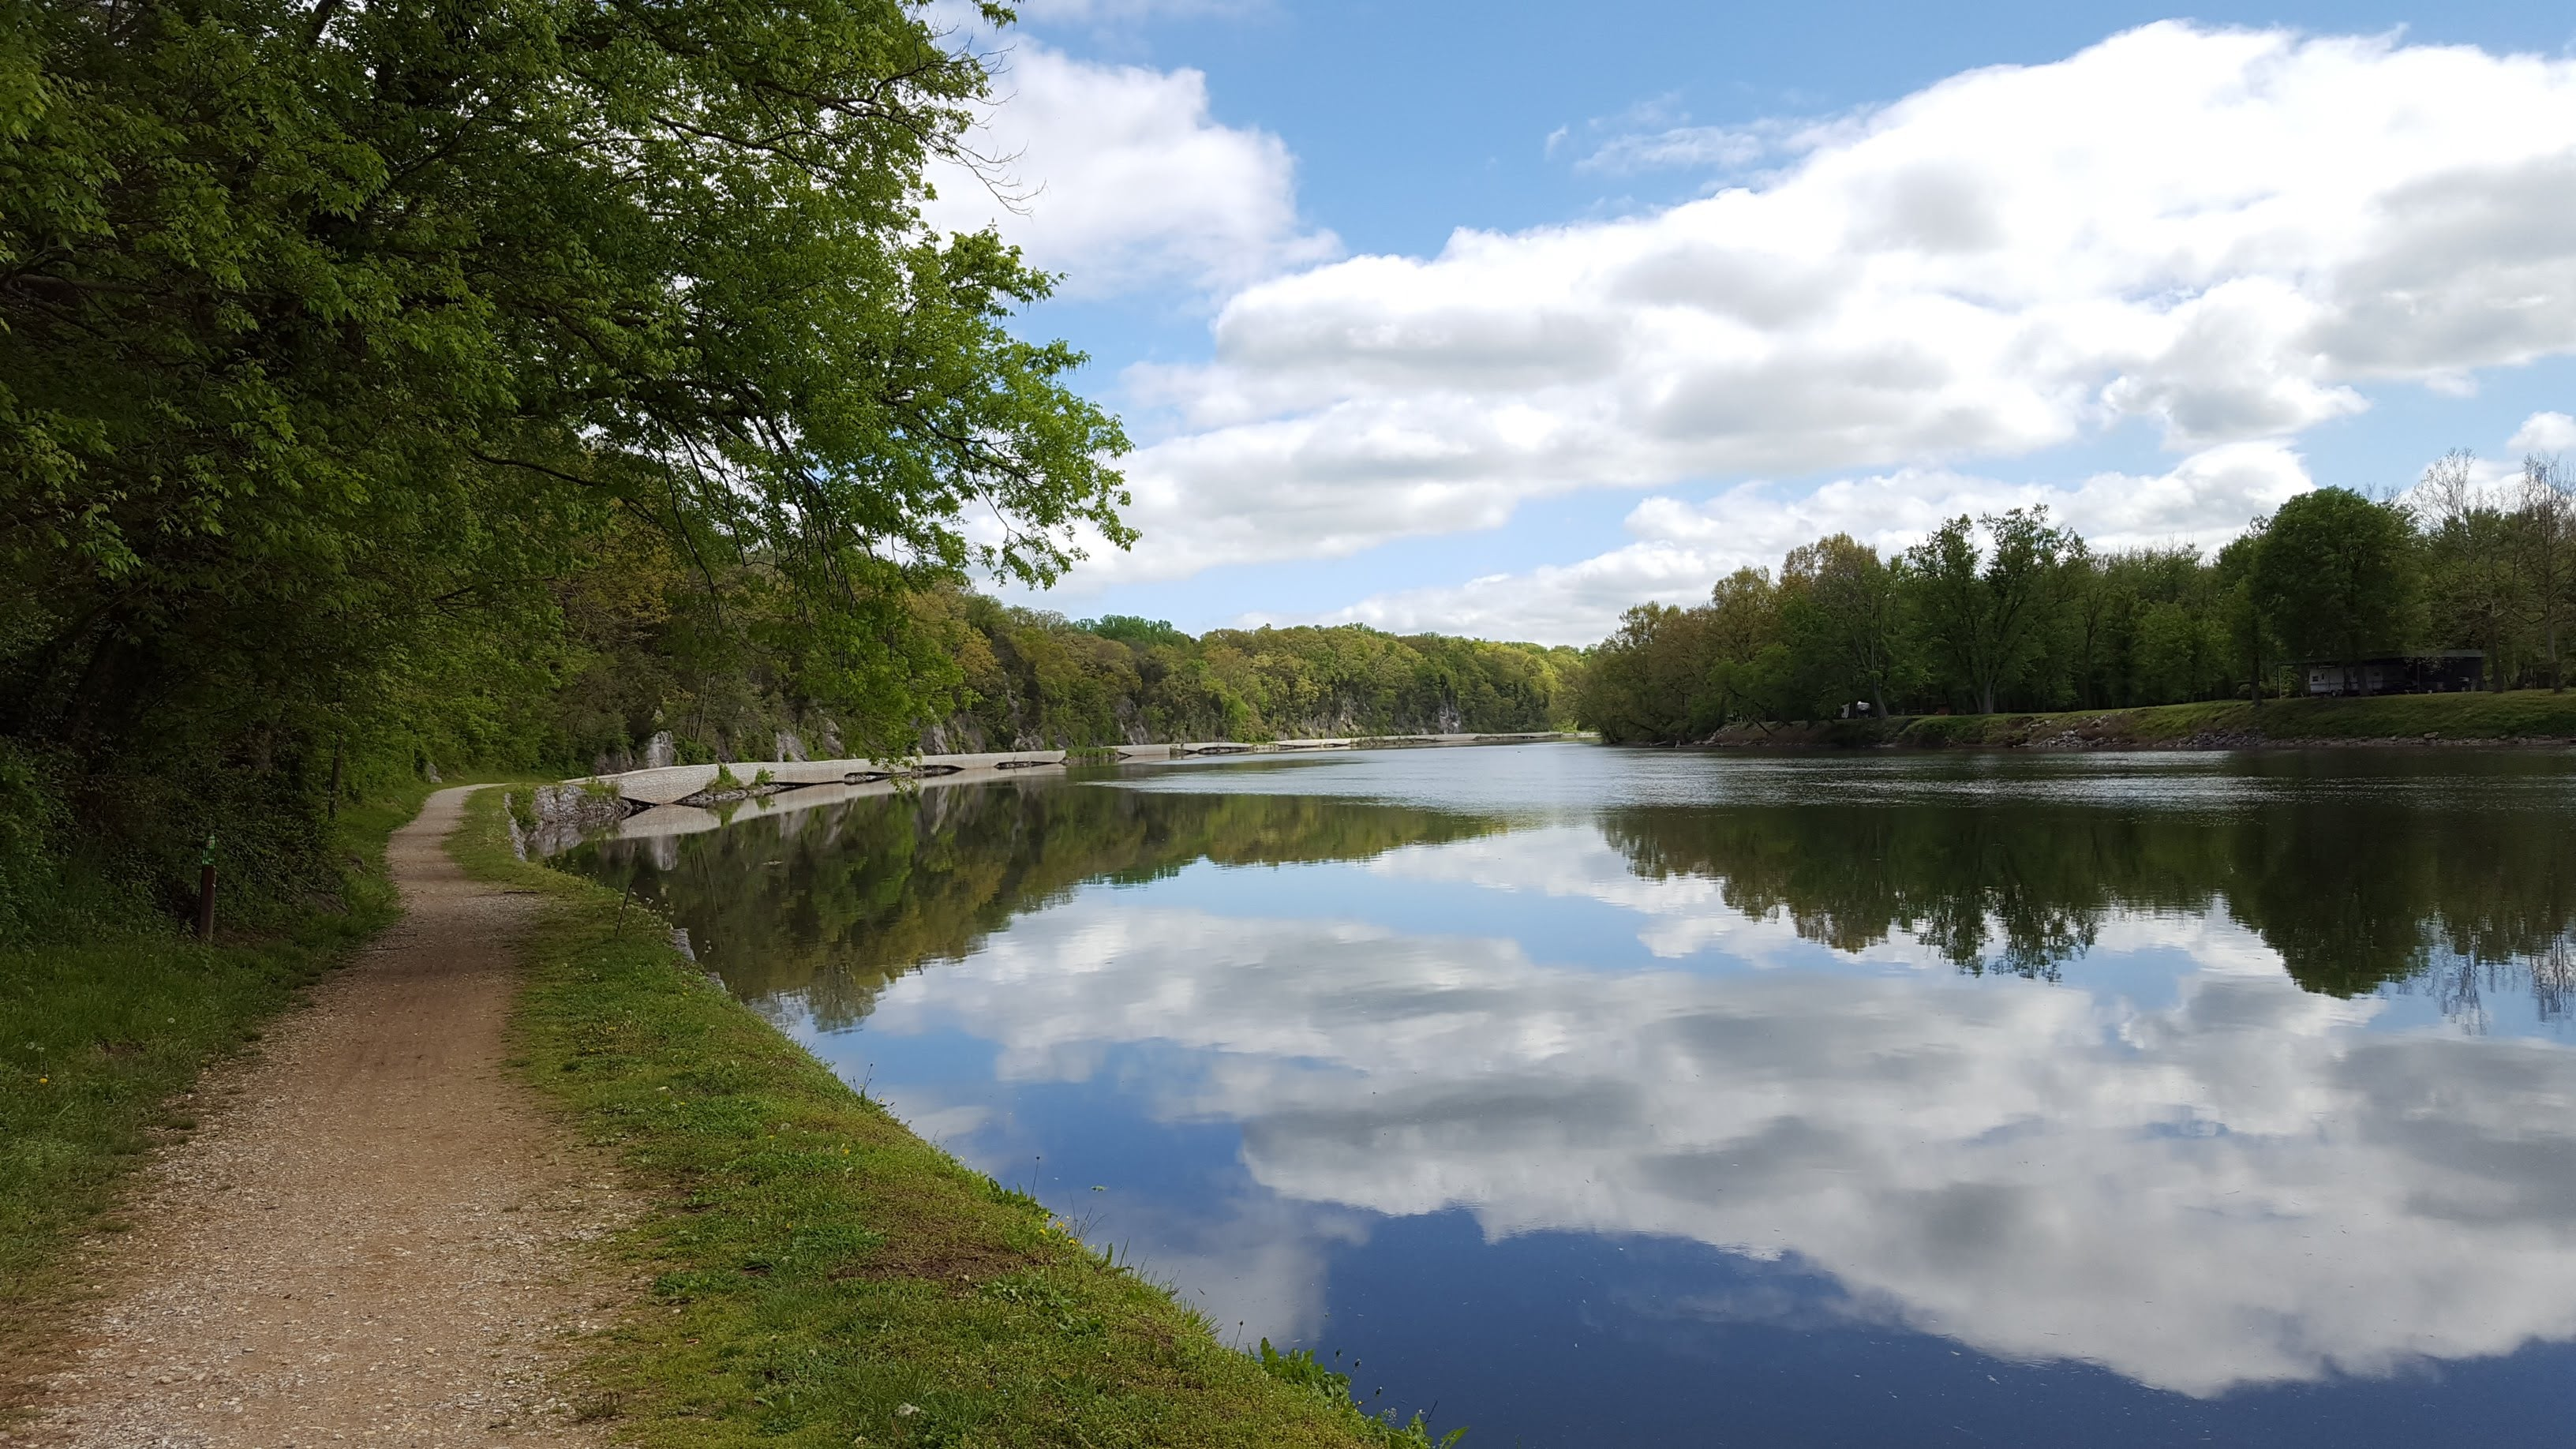 short thru hikes on the C&O Canal